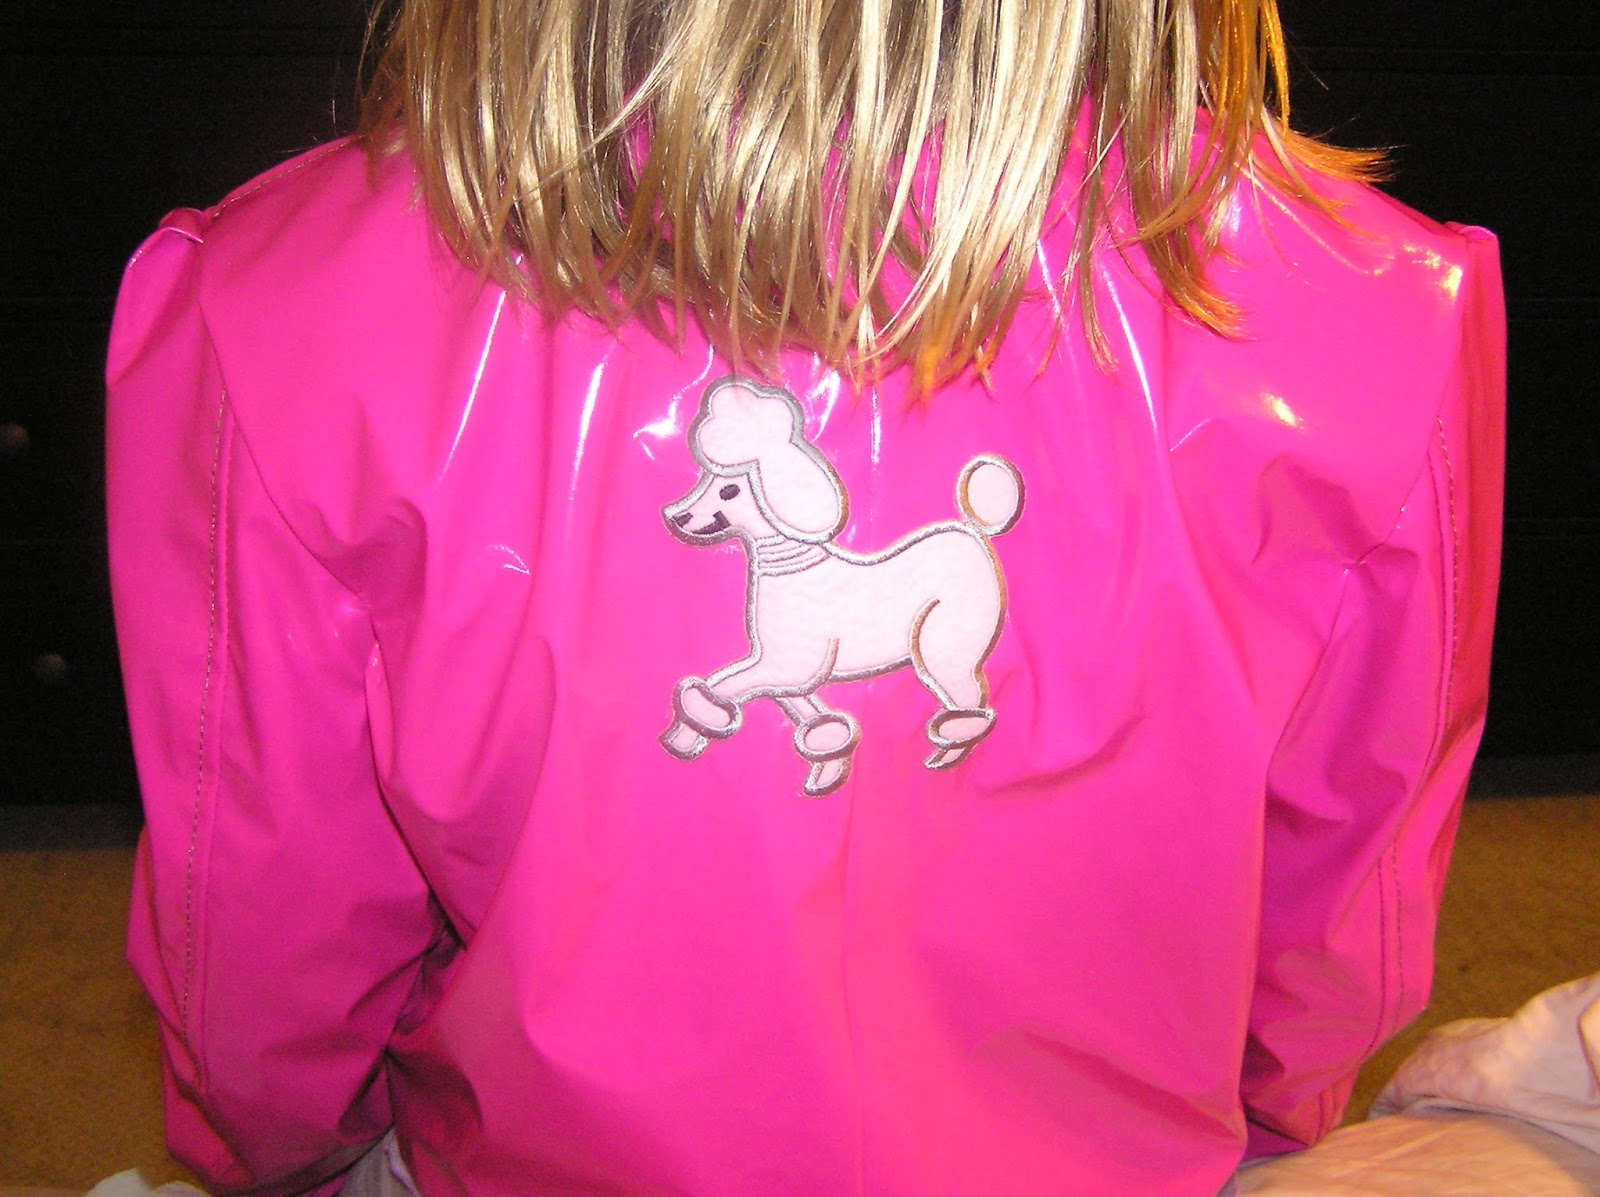 If a motorcycle jacket and a pink poodle Grease-style skirt had a ...